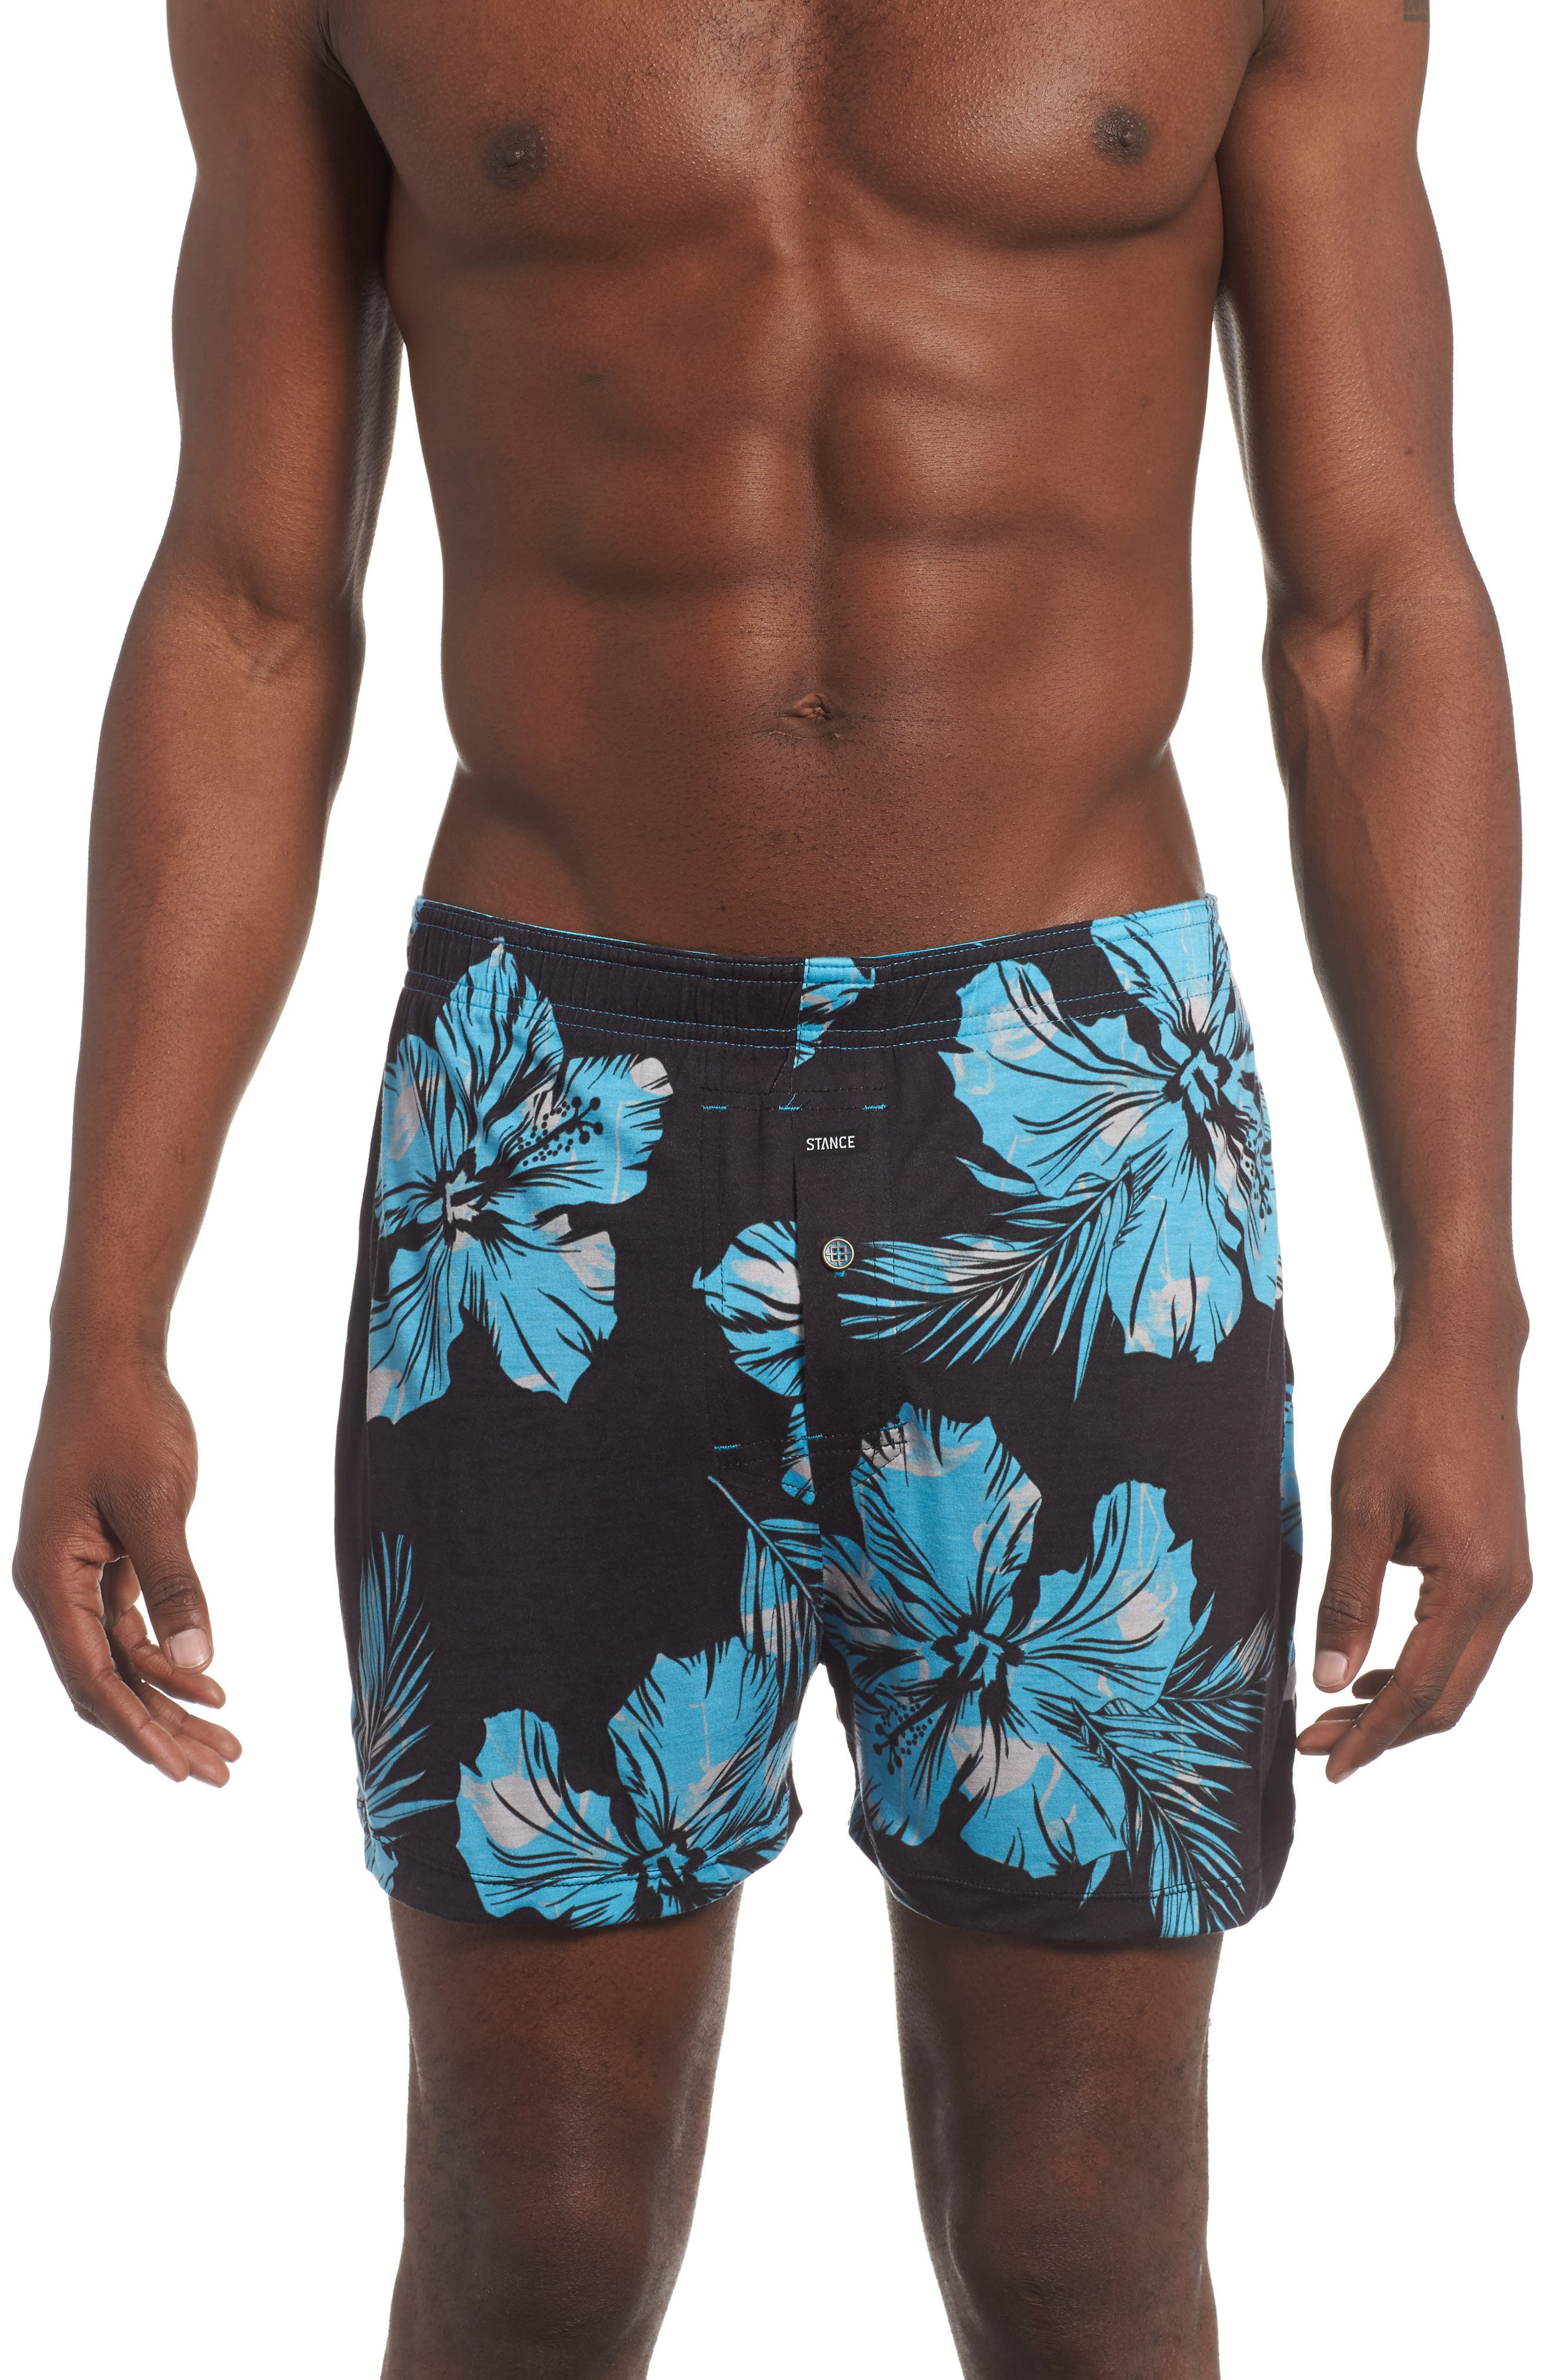 Mercato Flamingo Flowers Boxer Briefs,                         Main,                         color, Blue